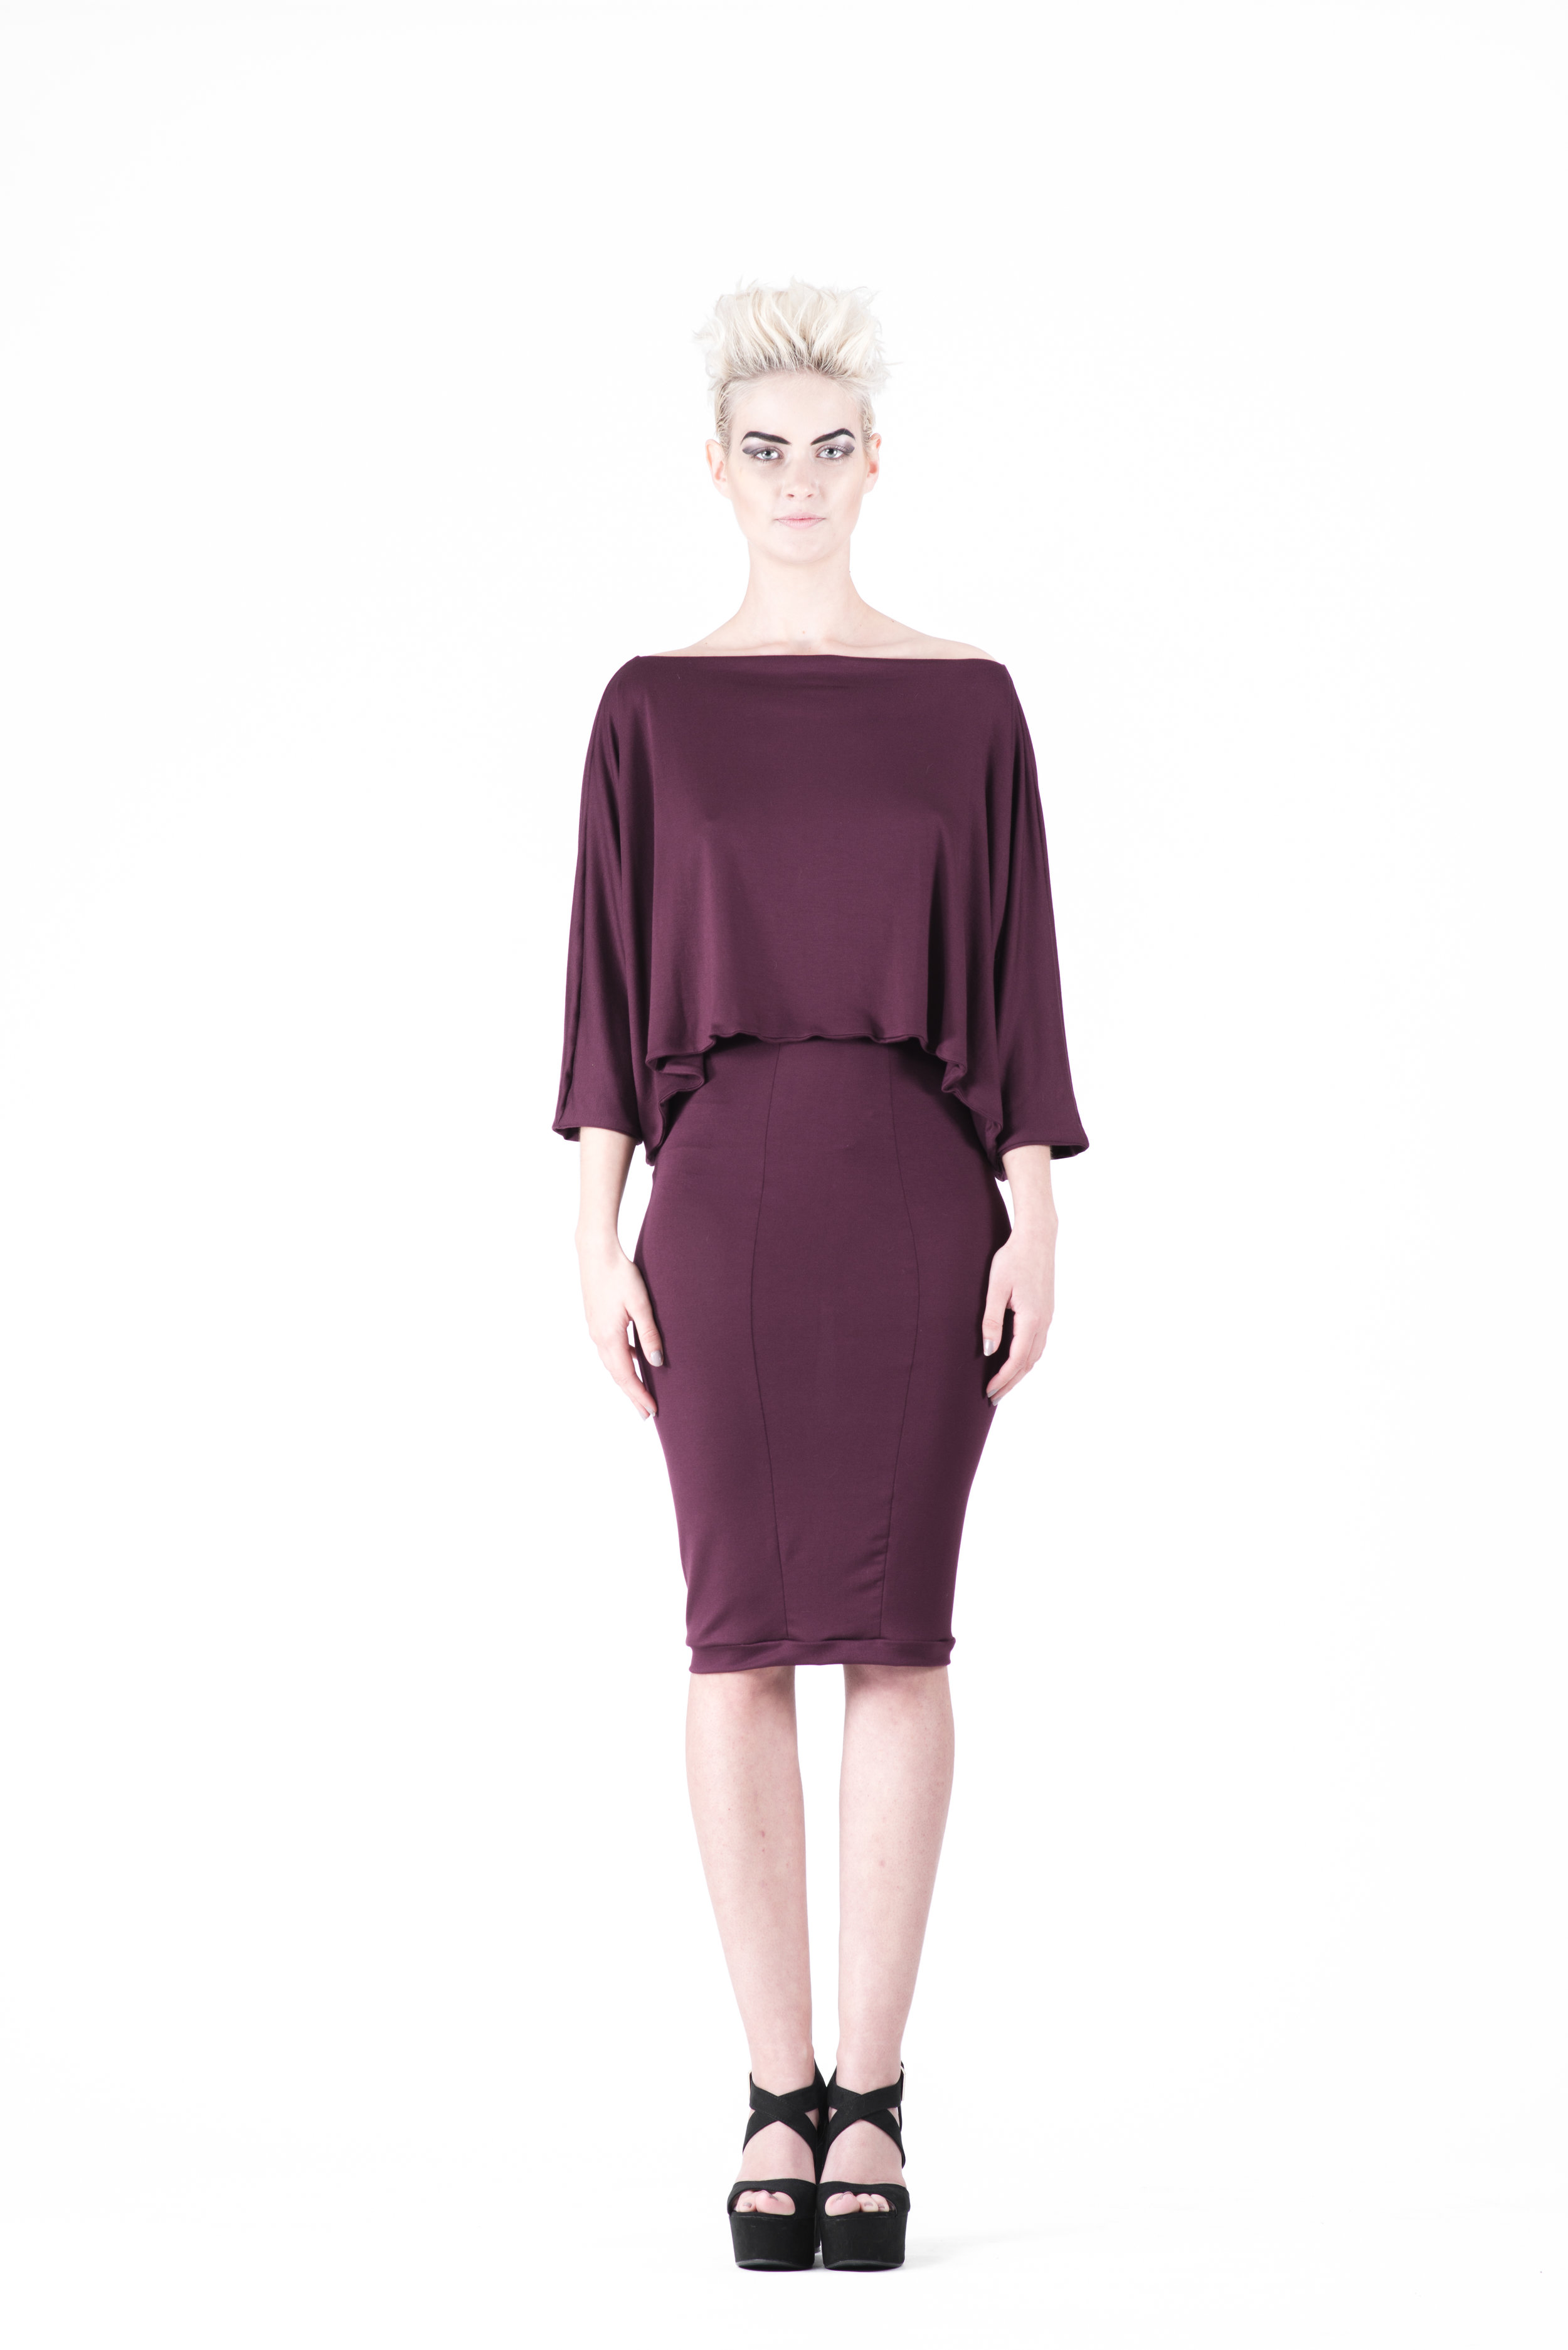 zaramia-ava-zaramiaava-leeds-fashion-designer-ethical-sustainable-tailored-minimalist-mika-plum-top-yuko-plum-versatile-drape-cowl-styling-womenswear-models-photoshoot-13